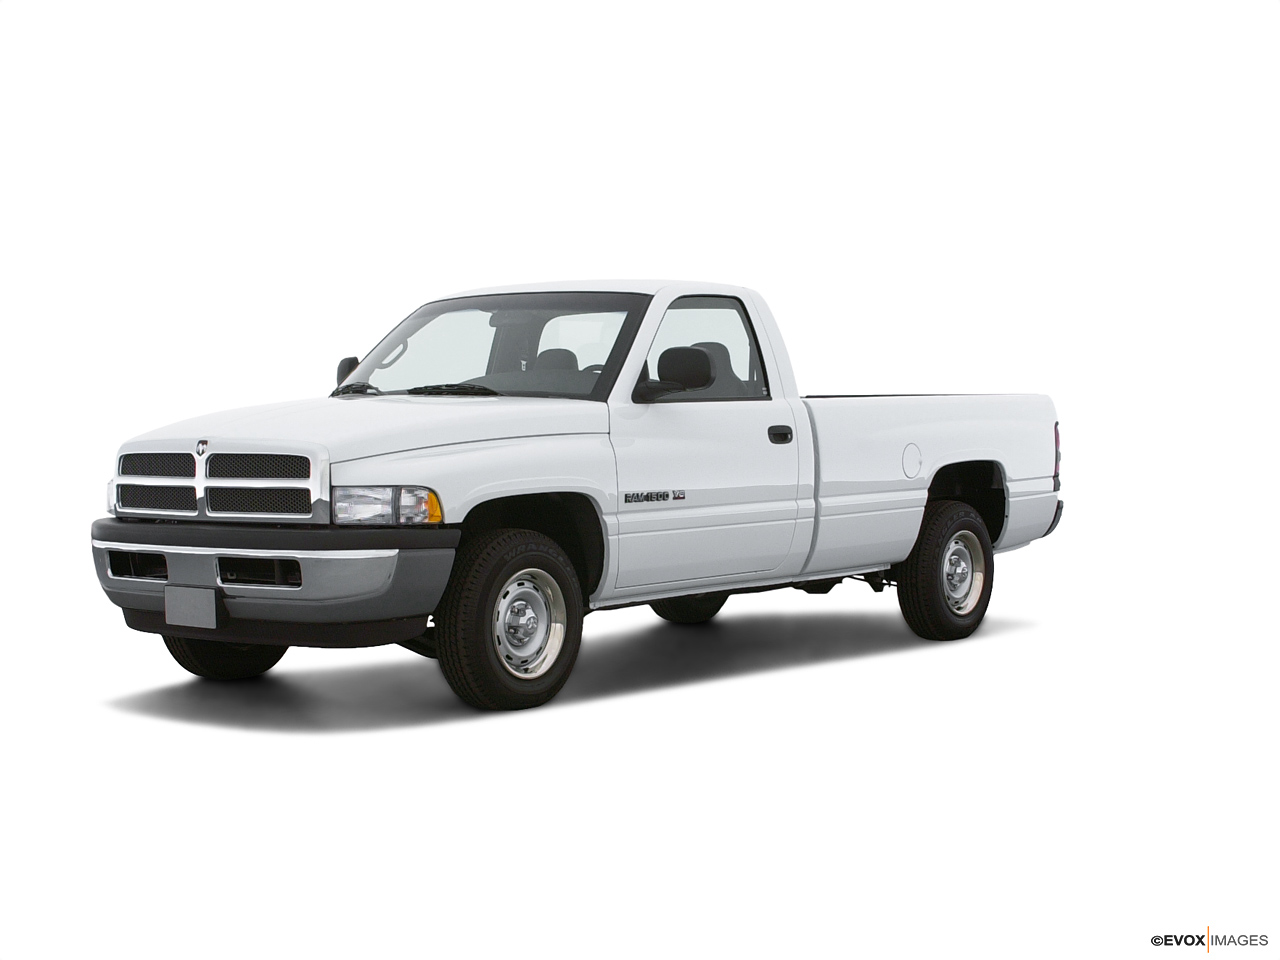 Dodge Service By Top Rated Mechanics Yourmechanic Ram 2005 Silver 1500 Hemi